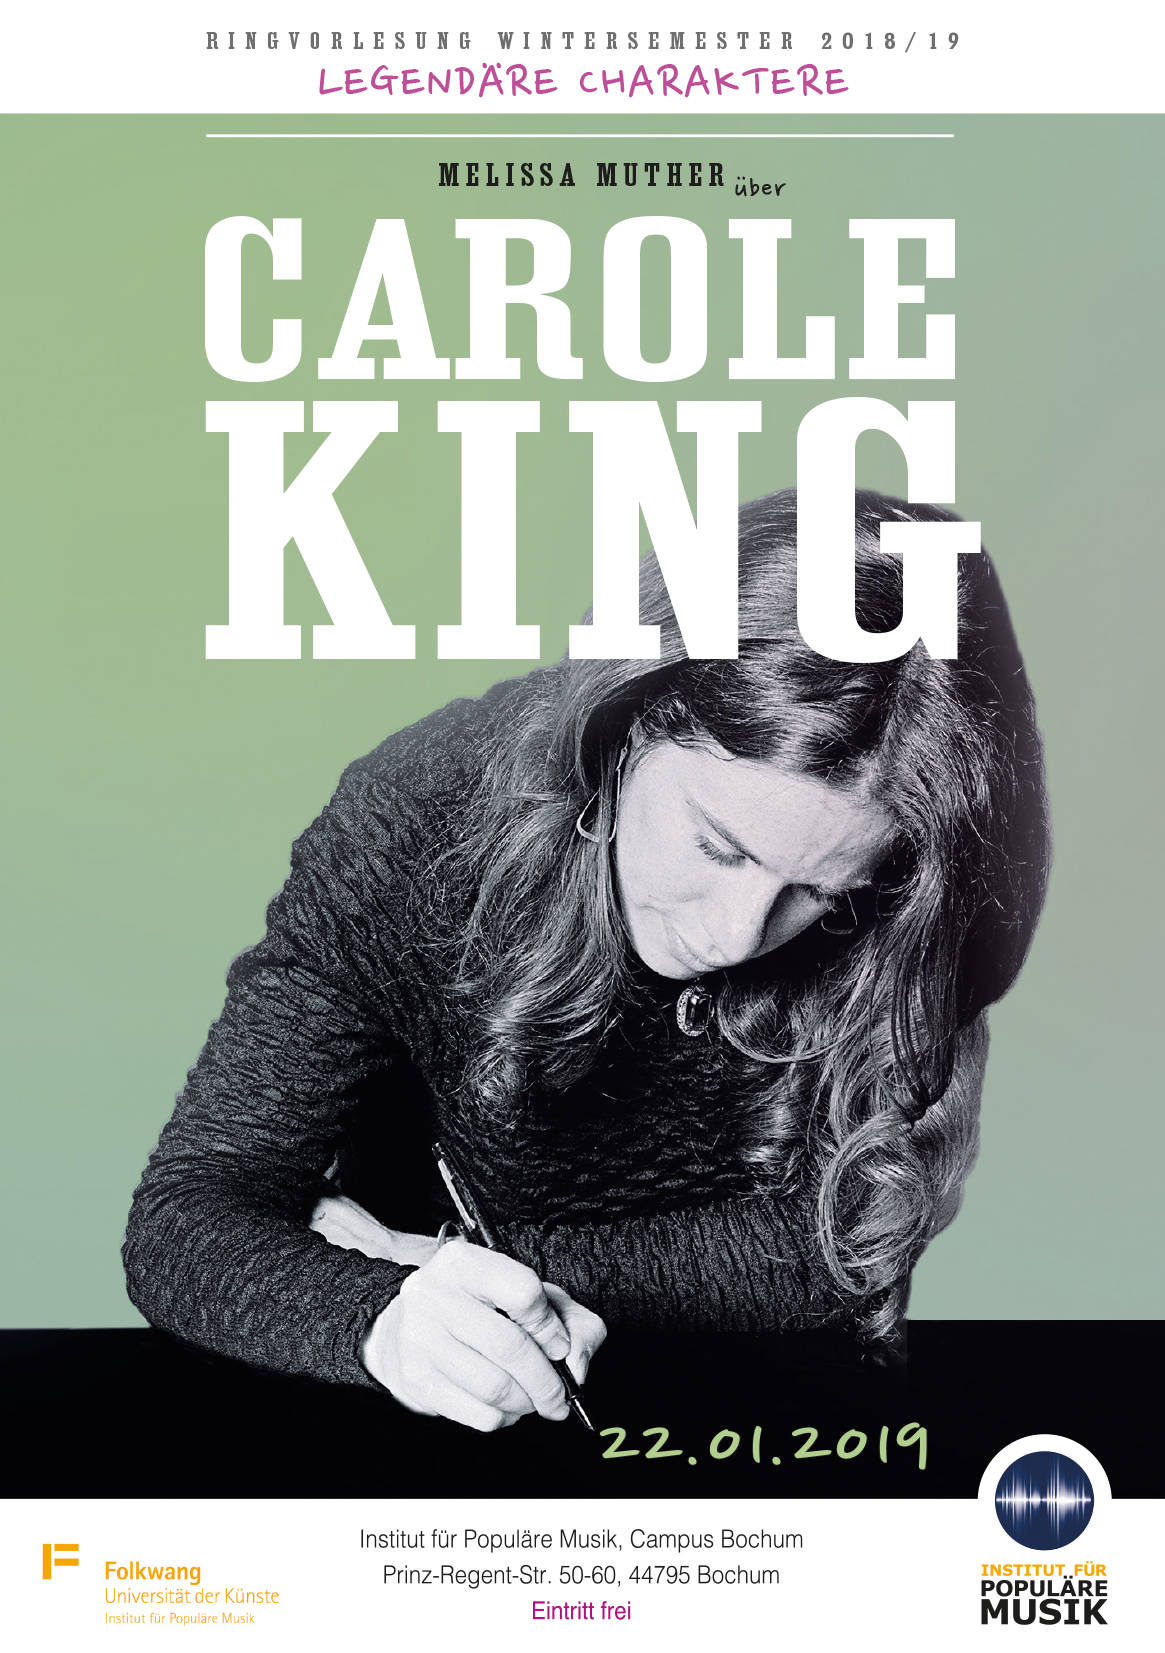 Melissa Muther über Carole King